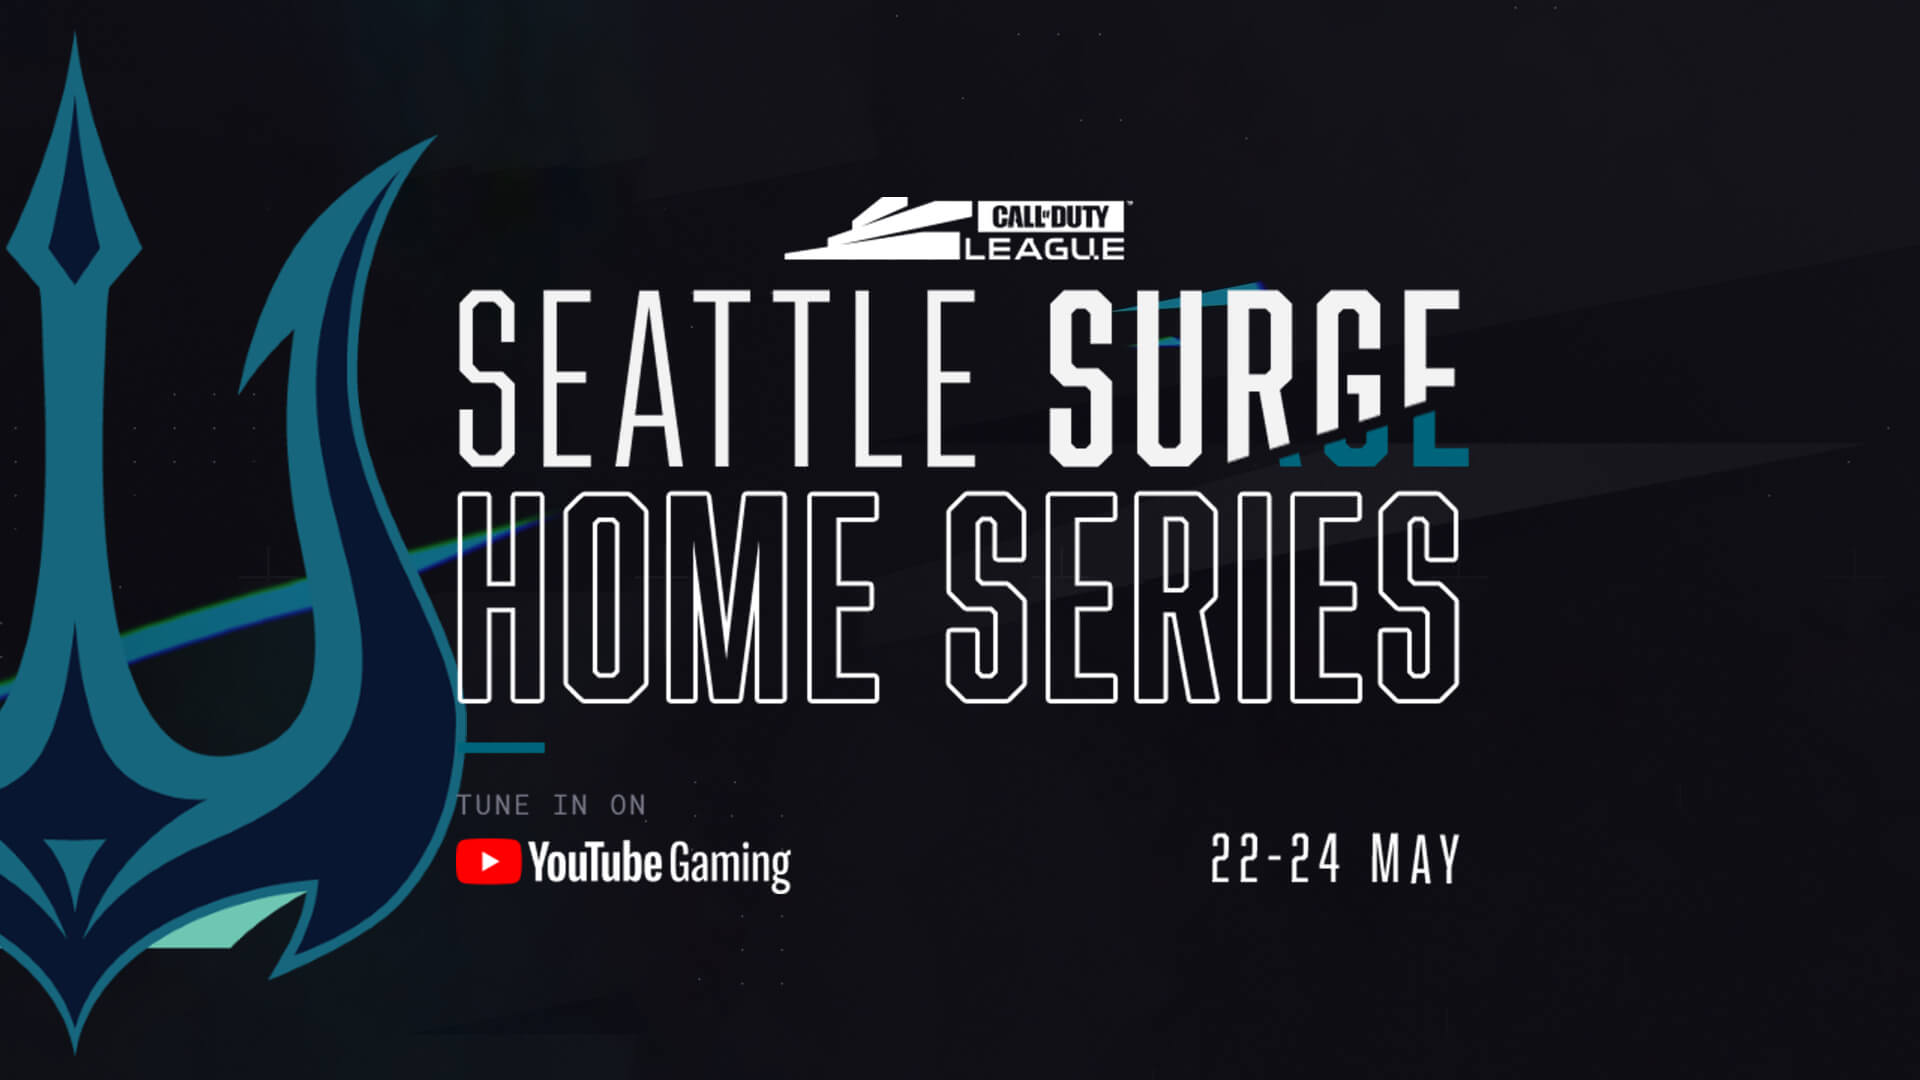 CDL Week 8 – Seattle Surge Home Series